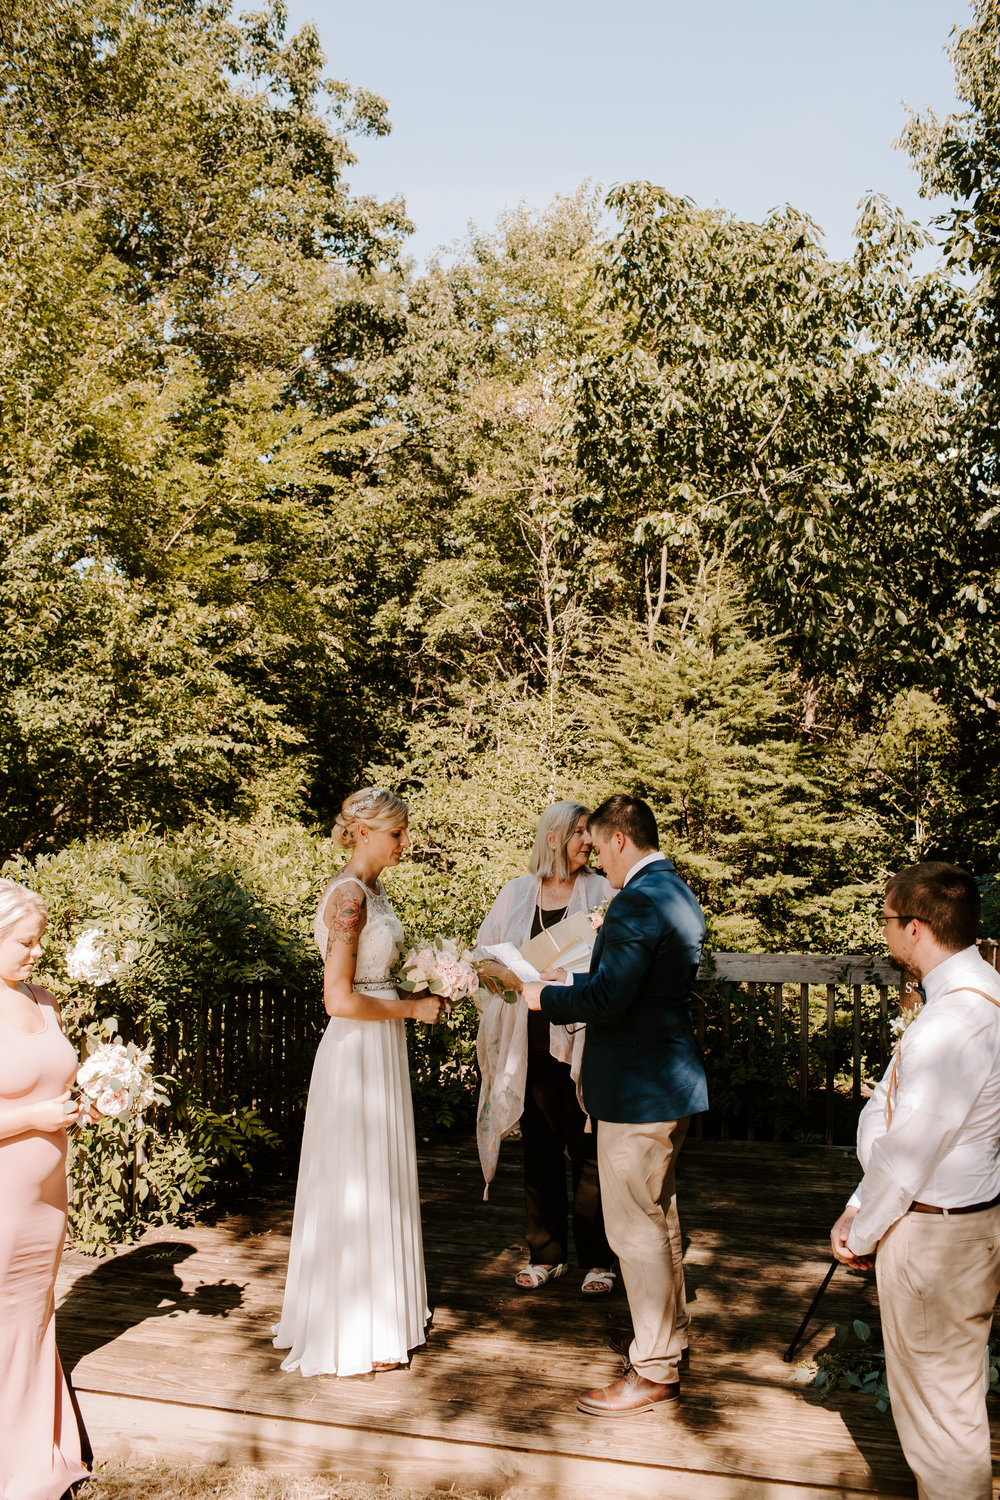 Miranda&braedon_ashevilleelopement (23 of 101).jpg